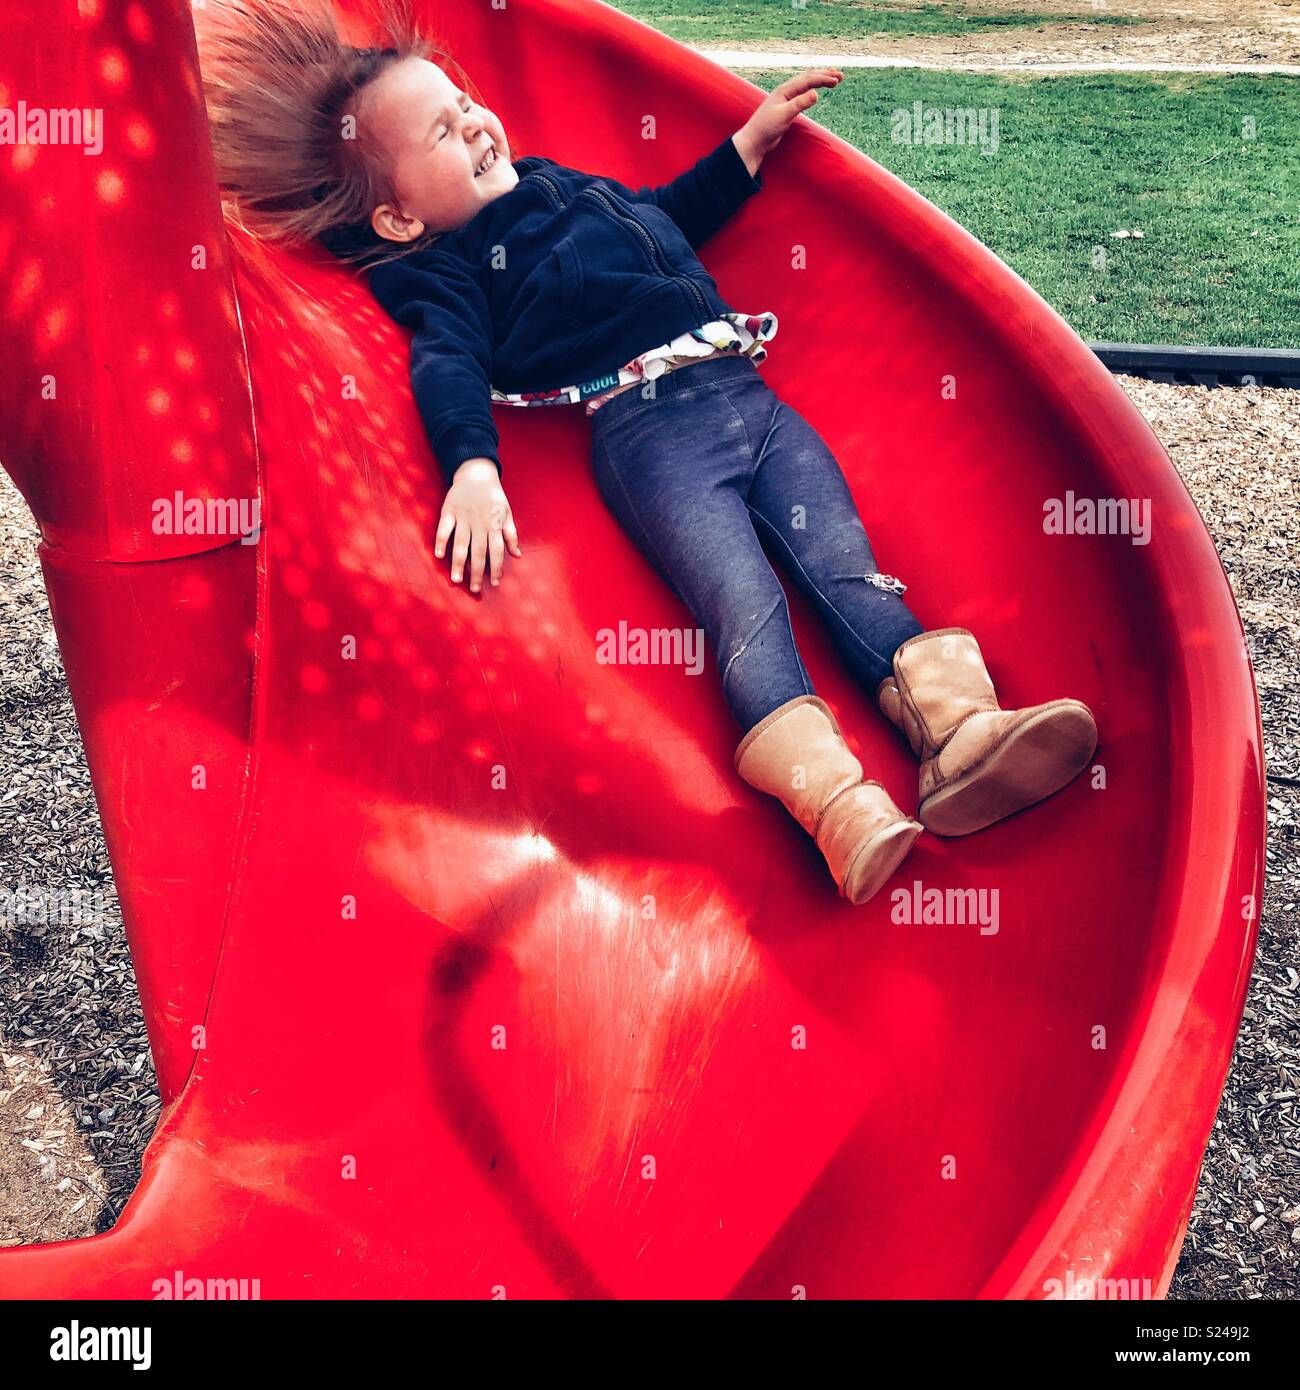 Toddler girl smiling happily while sliding down a red playground slide - Stock Image